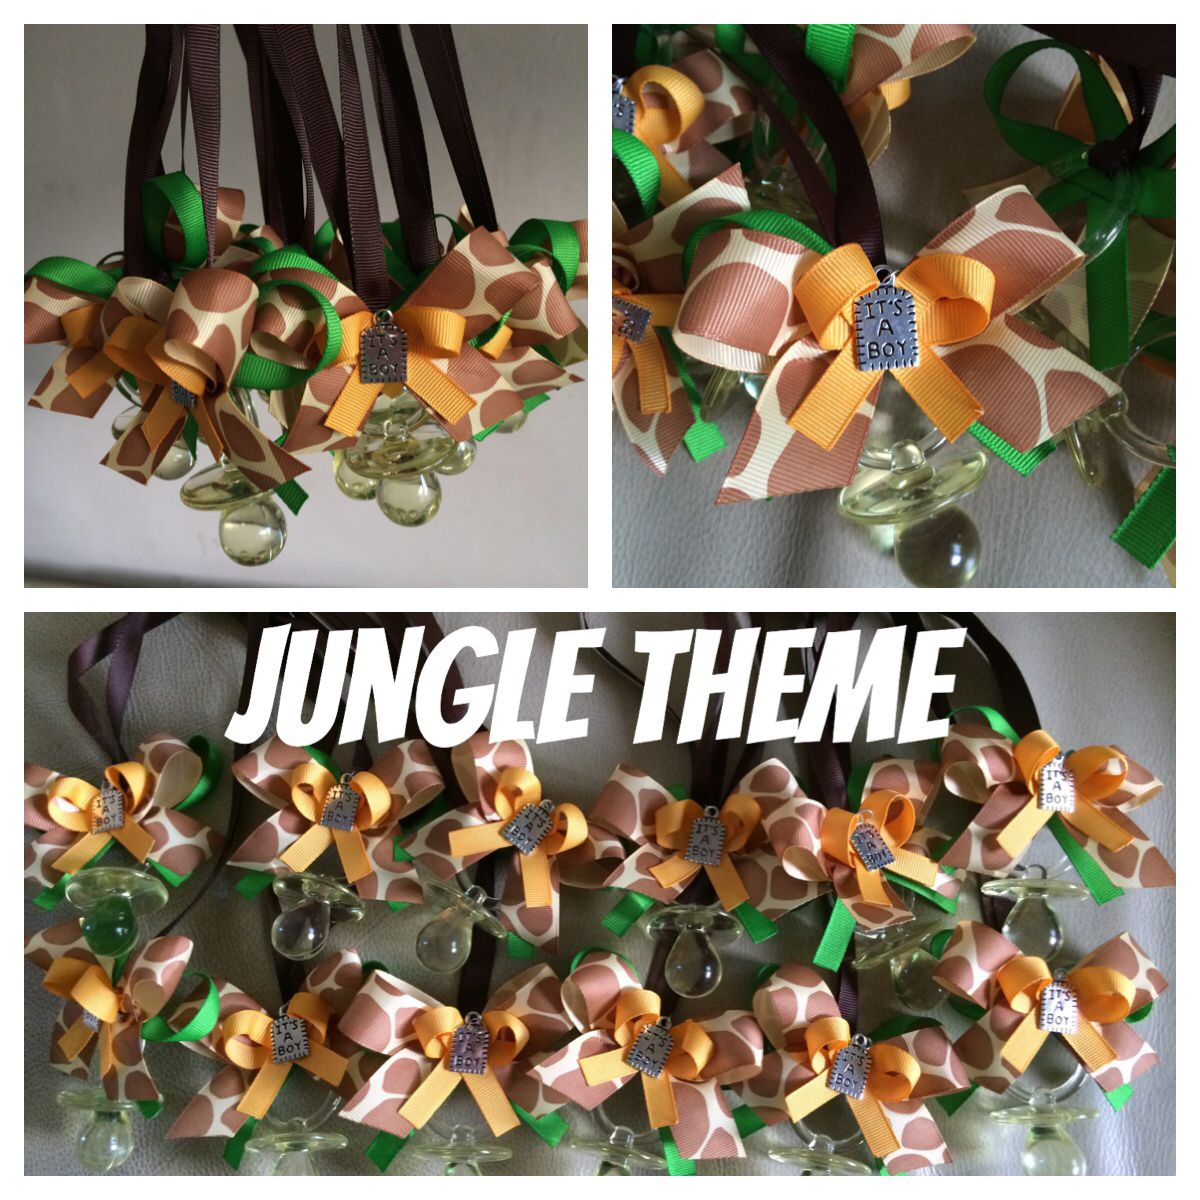 Jungle theme baby shower necklaces Party favors Match really well will jungle lion king or